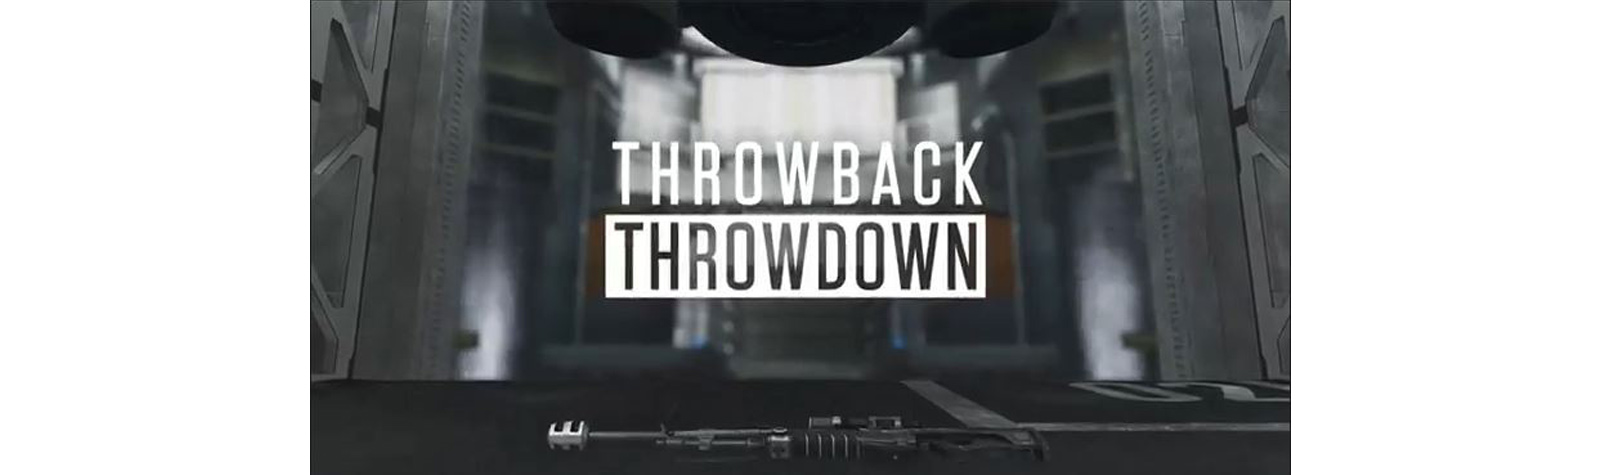 Halo Throwback Throwdown